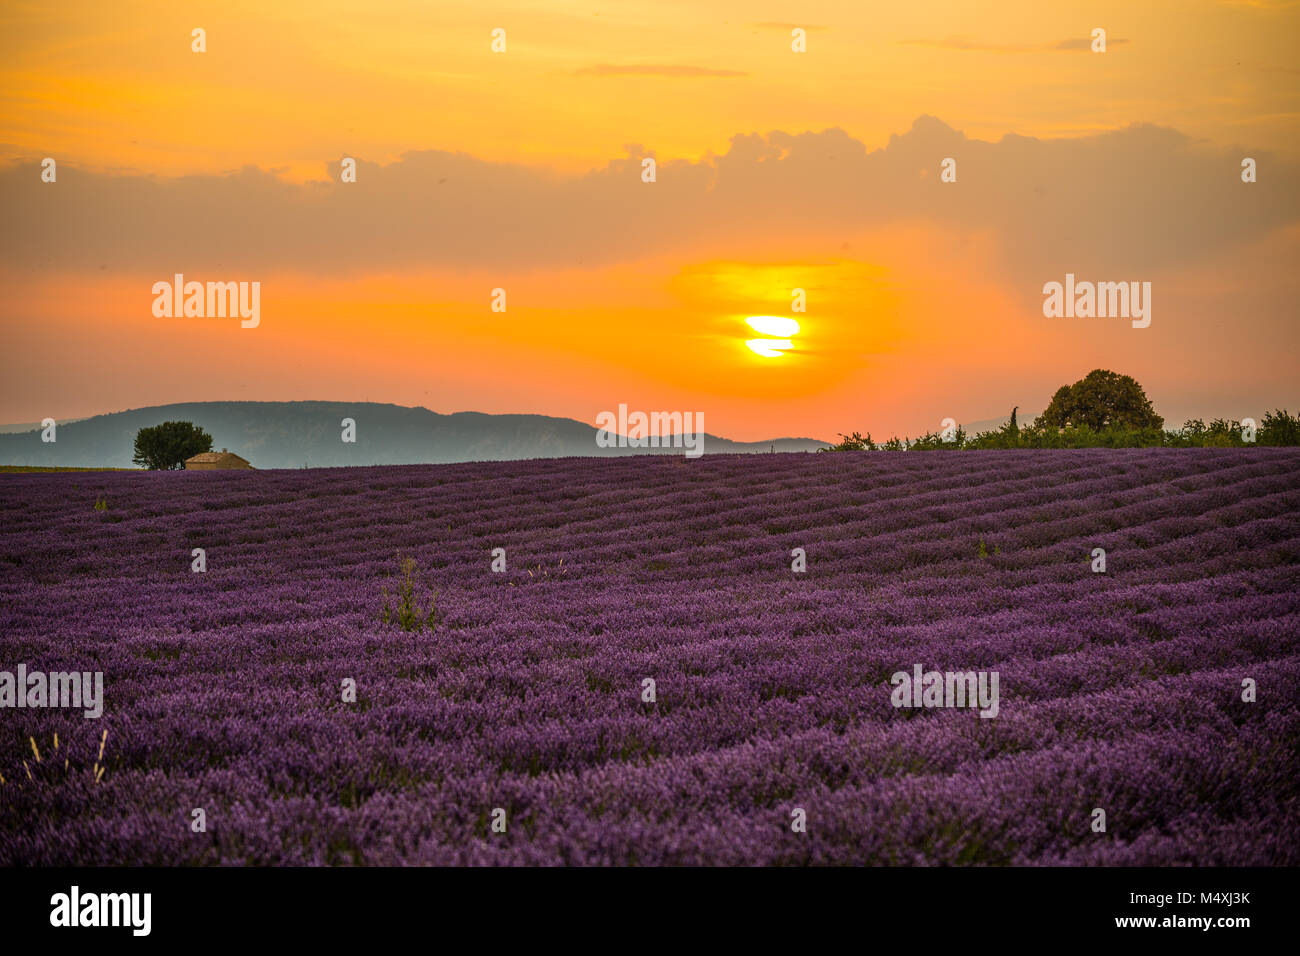 Lavender fields at sunset near the village of Valensole, Provence, France. Stock Photo